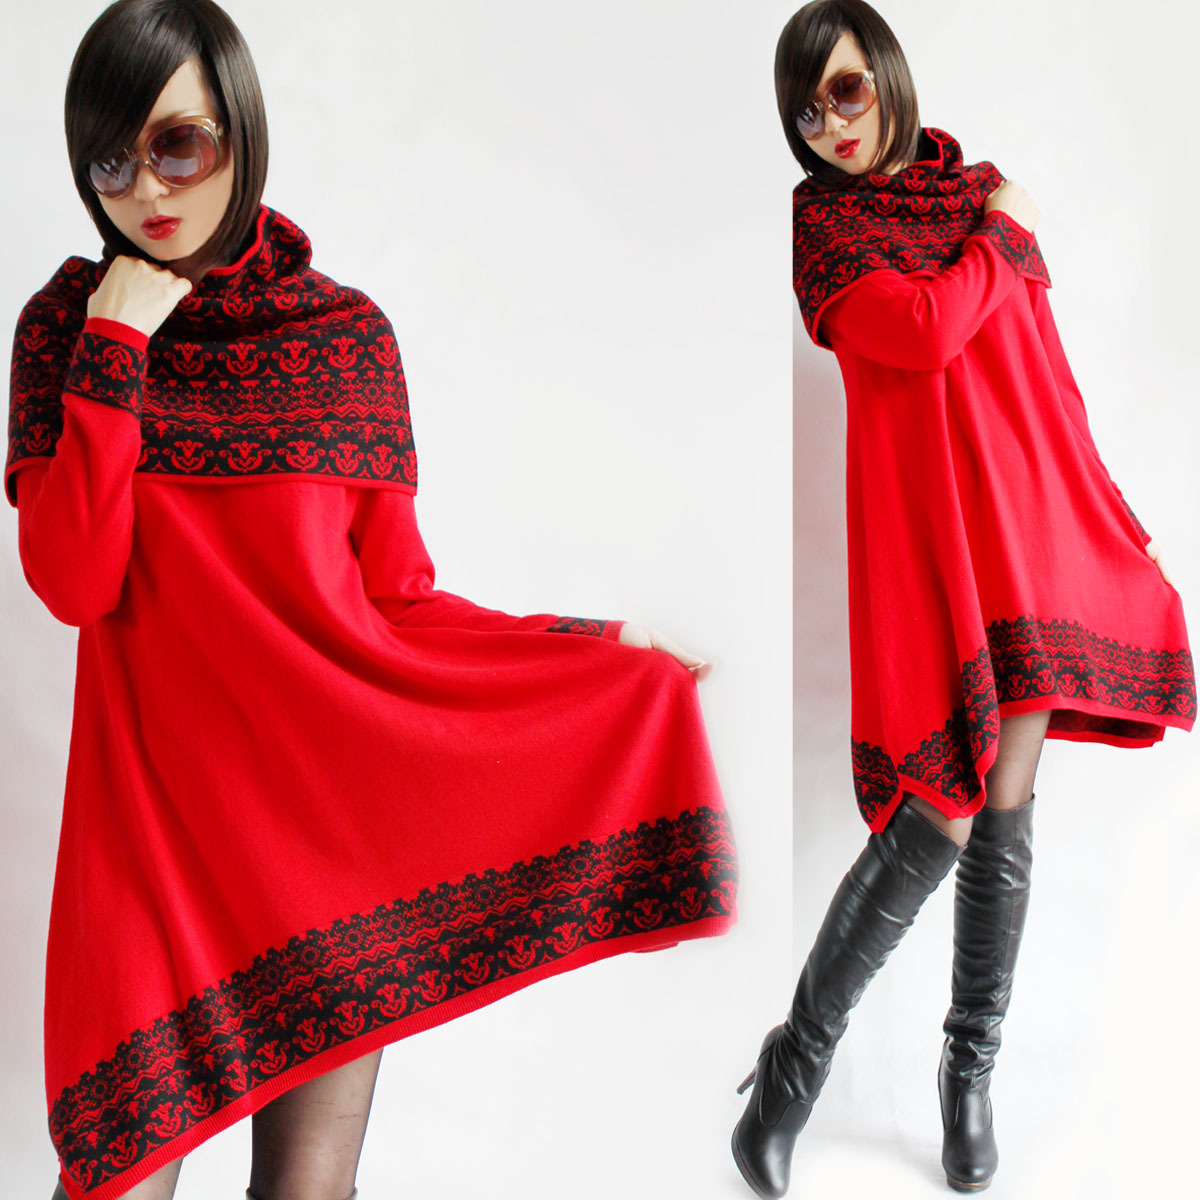 cashmere single bbw women Shop womens swearter dresses cheap sale online, you can buy black sweater dresses, long sleeve sweater dresses, knit sweater dresses and plus size sweater dresses for women at wholesale prices on sammydresscom free shipping available worldwide.